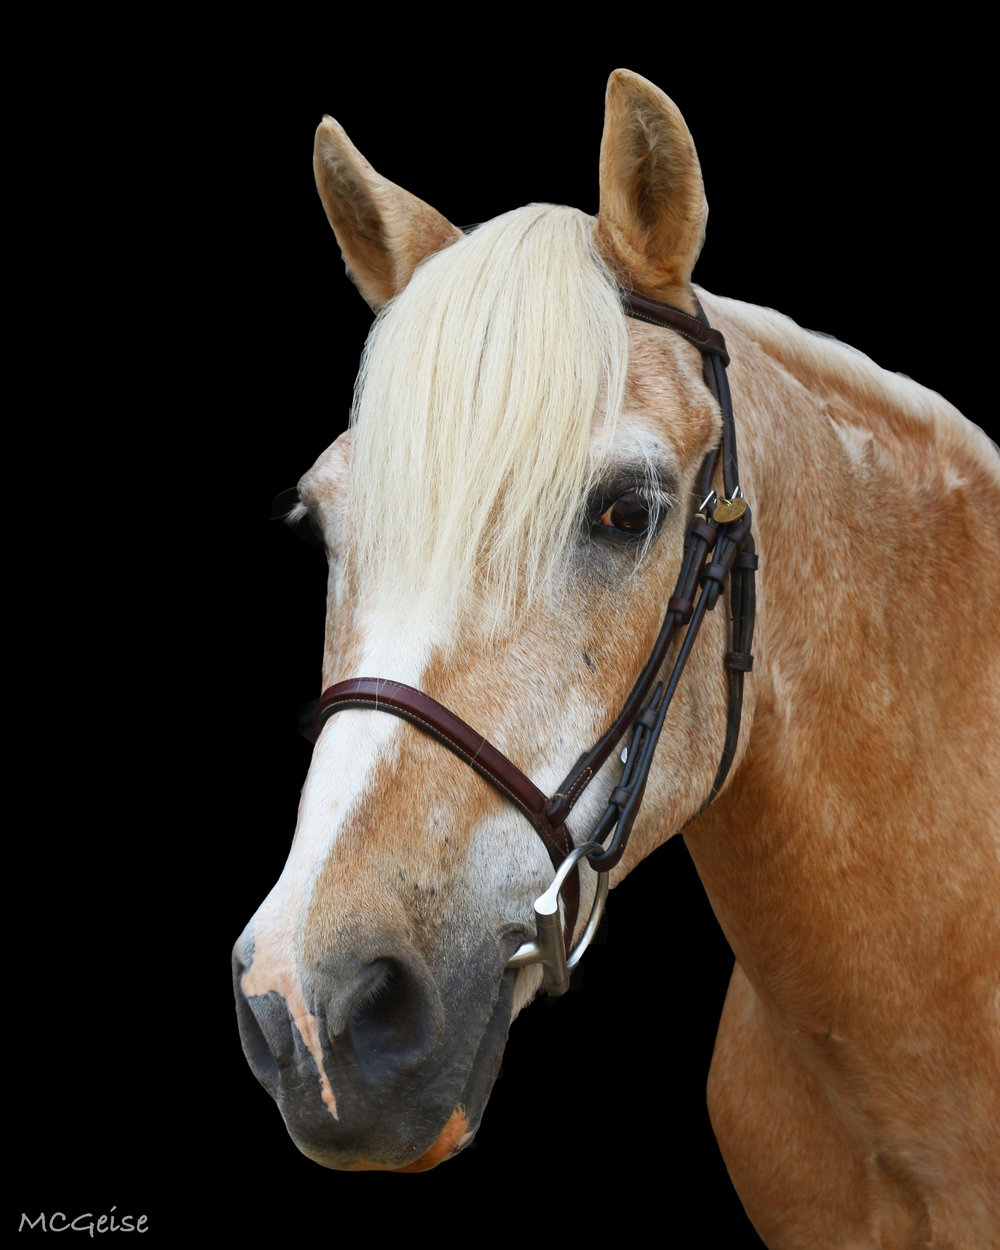 ALVIN   Alvin  is a 12.1 hand Halflinger Cross pony who takes care of the children that he works with. Whether it is a tiny two year old in therapy or a child learning to ride independently for the first time in camp, he will take care of them.